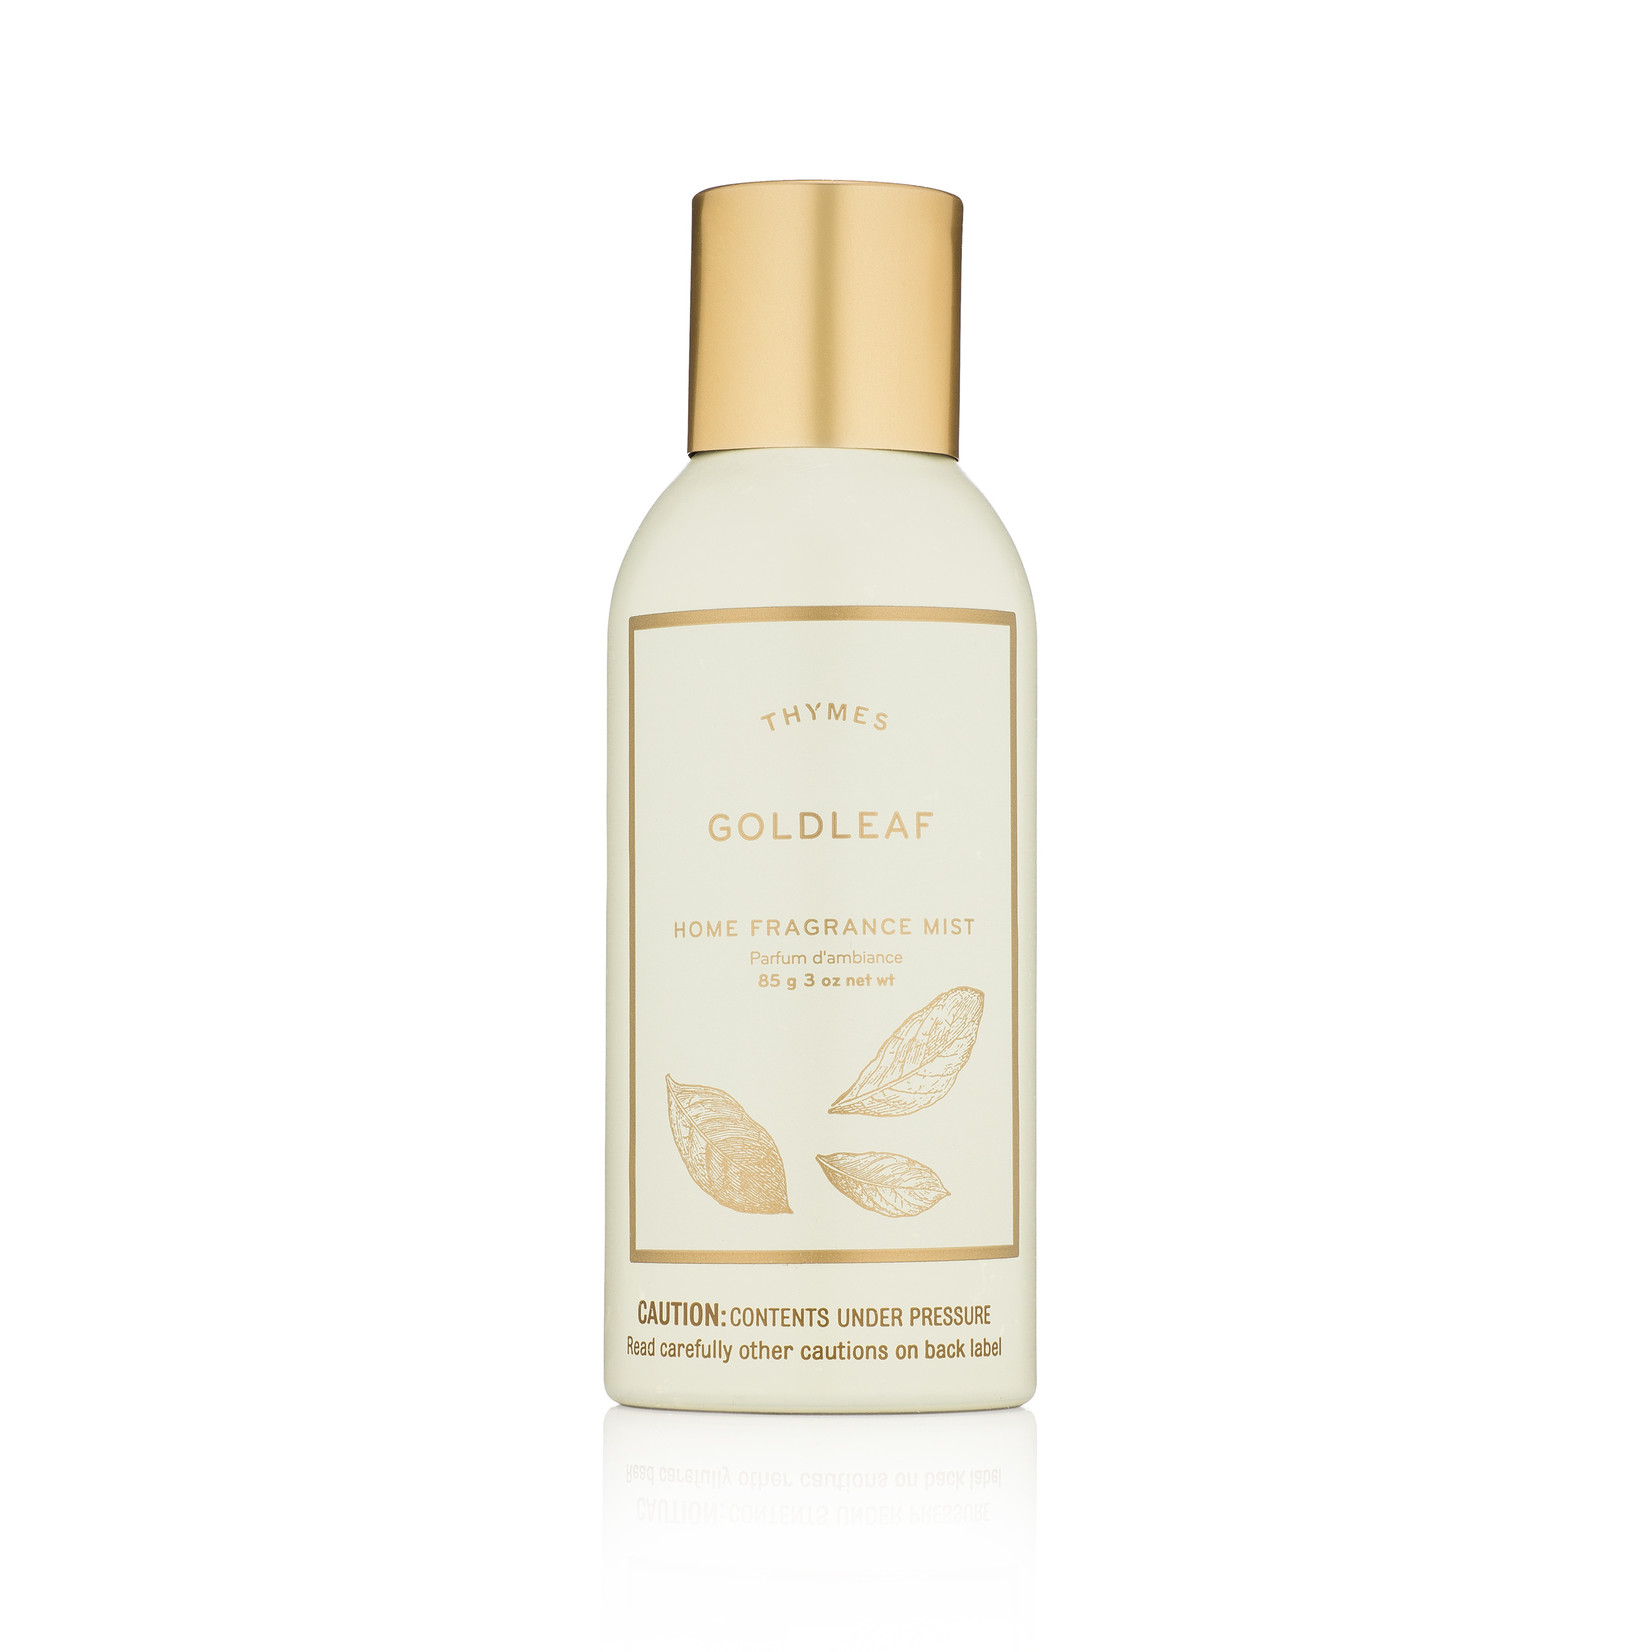 Thymes Home Fragrance Mist